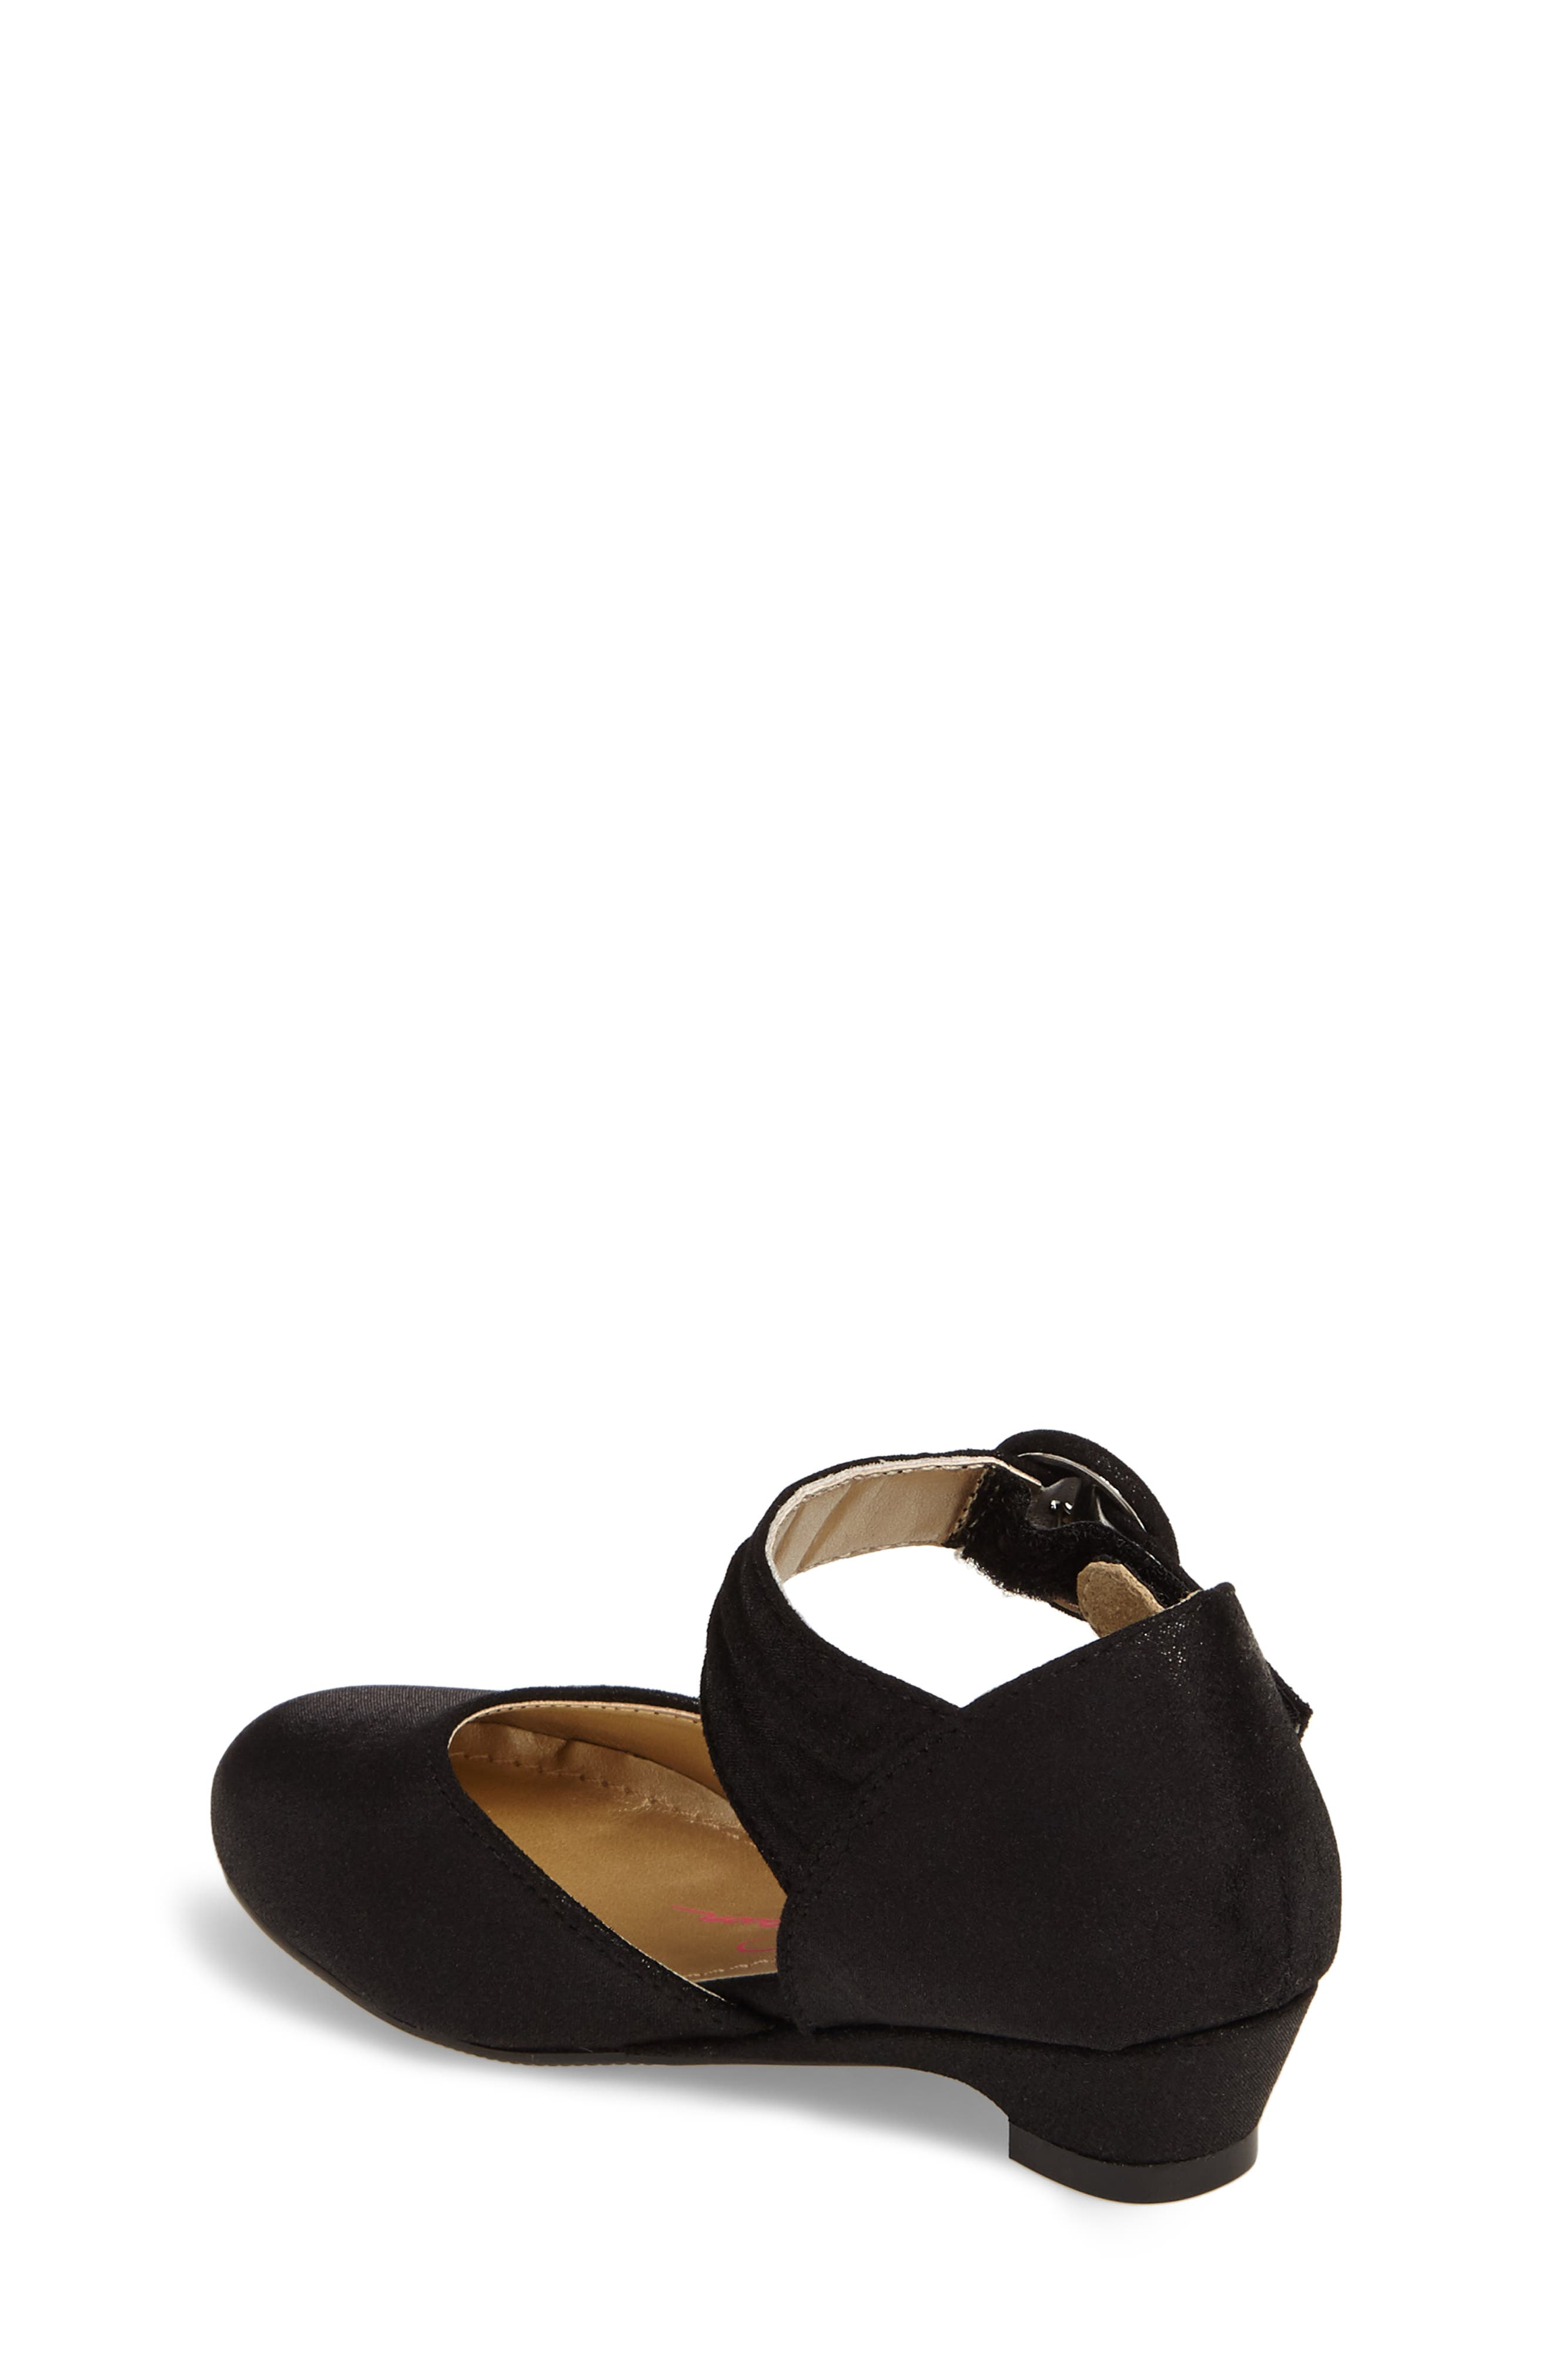 Tiana Shimmery Pump,                             Alternate thumbnail 2, color,                             Black Suede